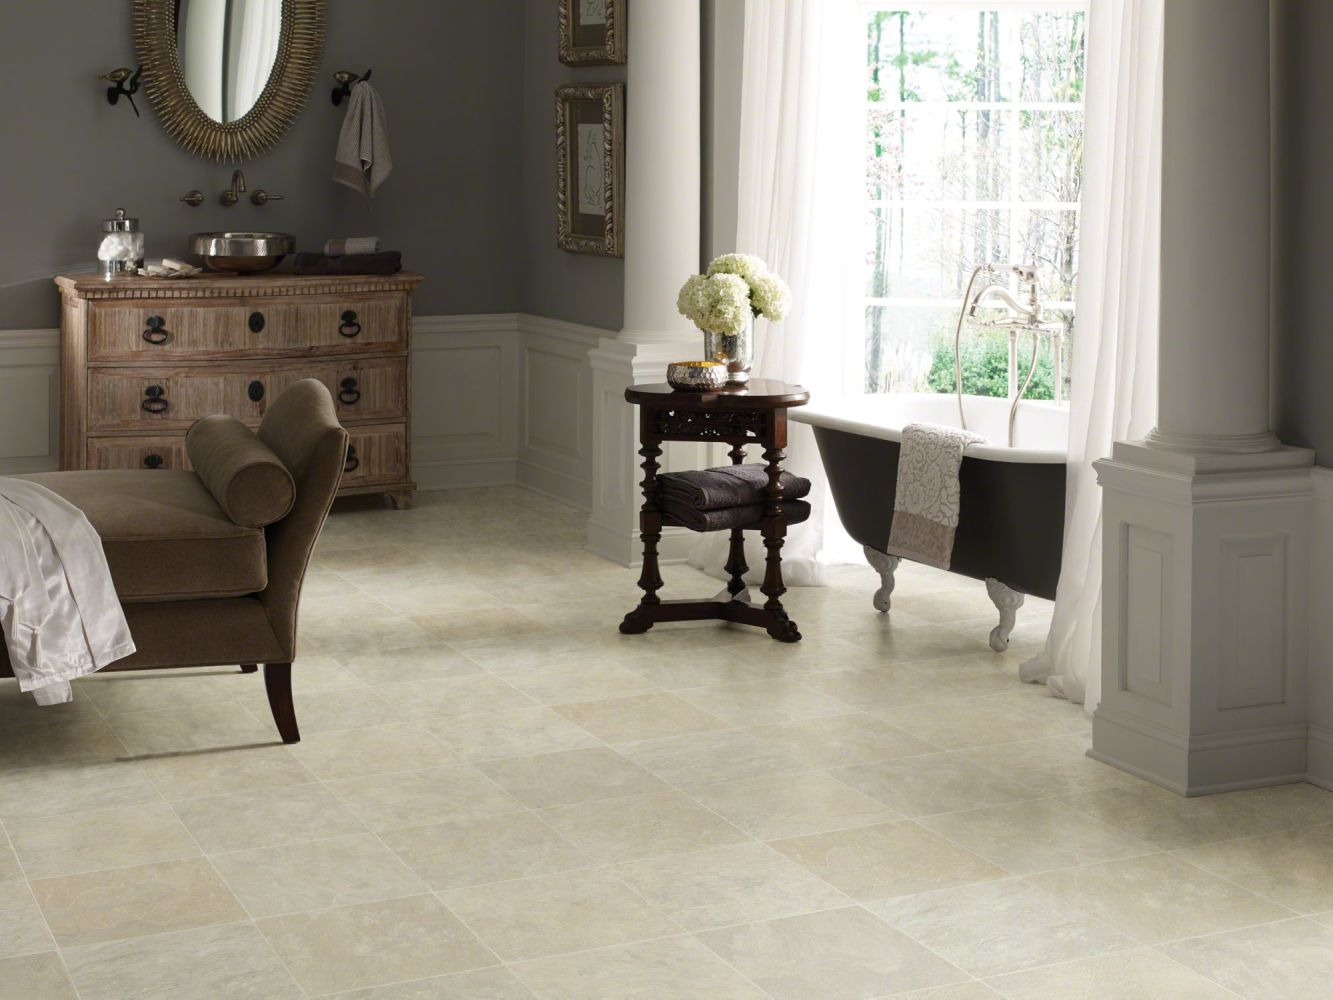 Shaw Floors Resilient Property Solutions Pro 12 Cape Cod 00106_VG062